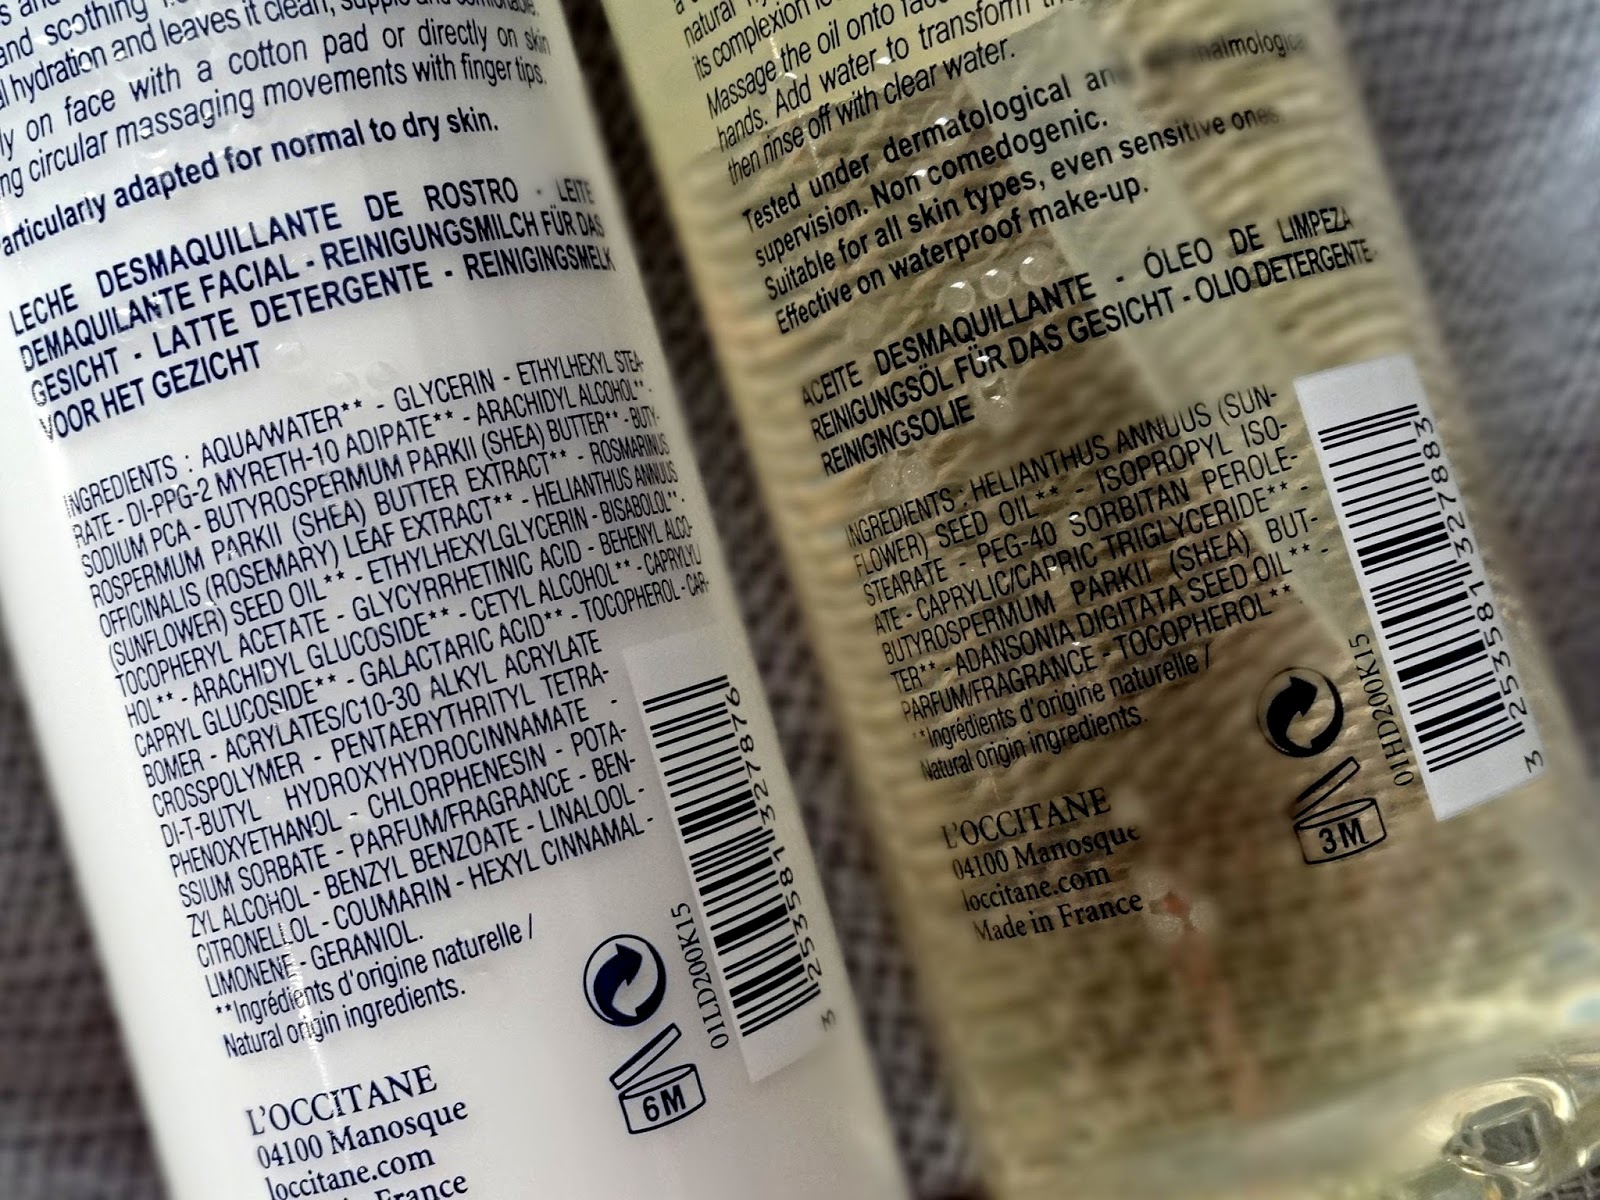 L'Occitane Shea Butter Cleansing Oil and Cleansing Milk Ingredients